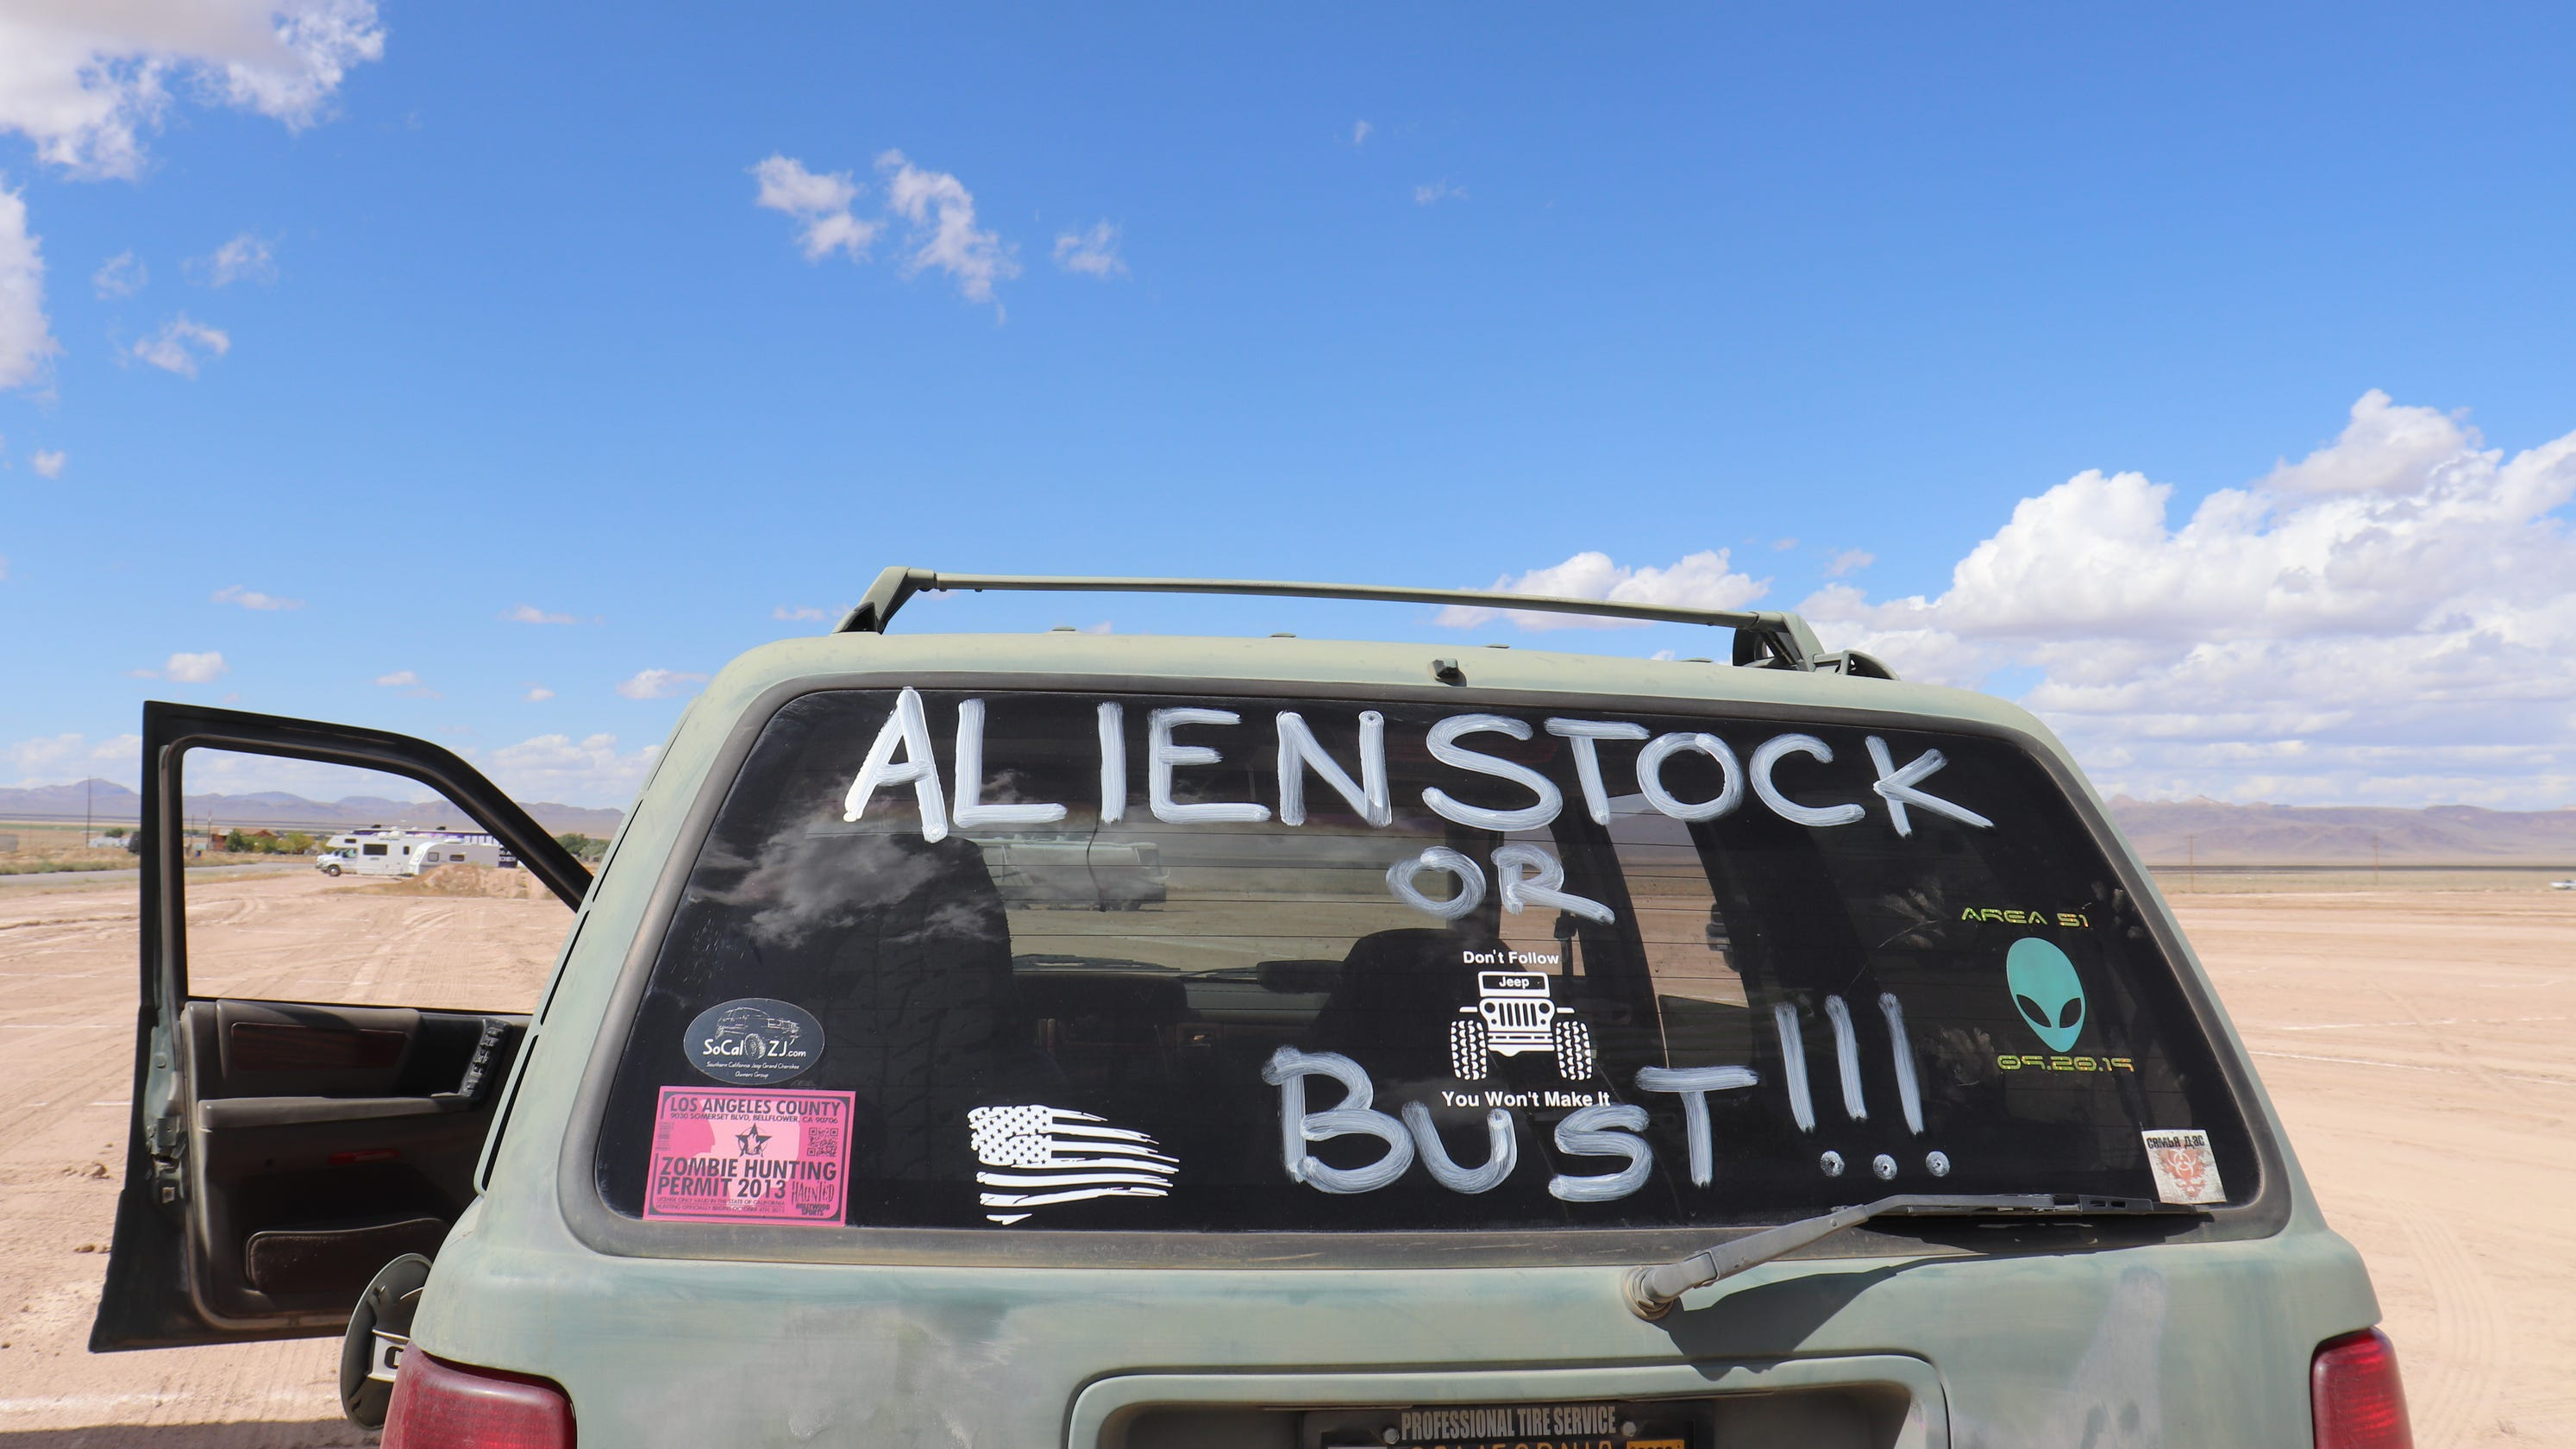 Alienstock music festival draws like-minded seekers to dusty Nevada town in search of 'them aliens'